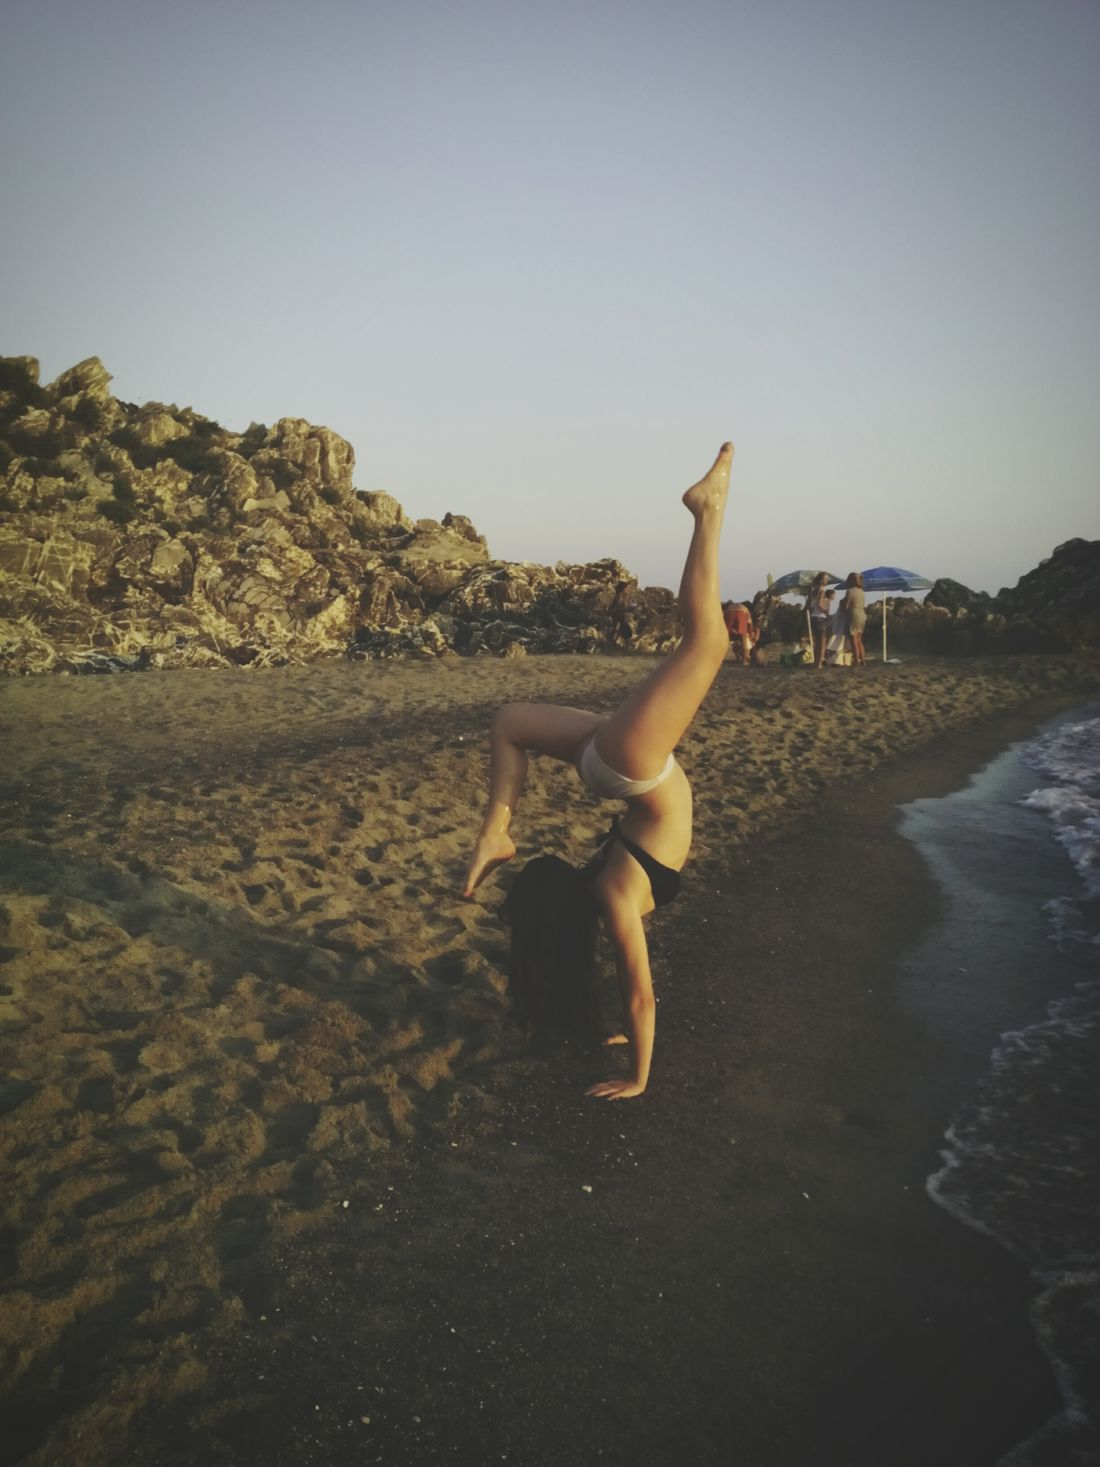 Beach Sun Gymnastics Handstand  Sea Self Portrait Around The World Hollydays Me Sunset Italy